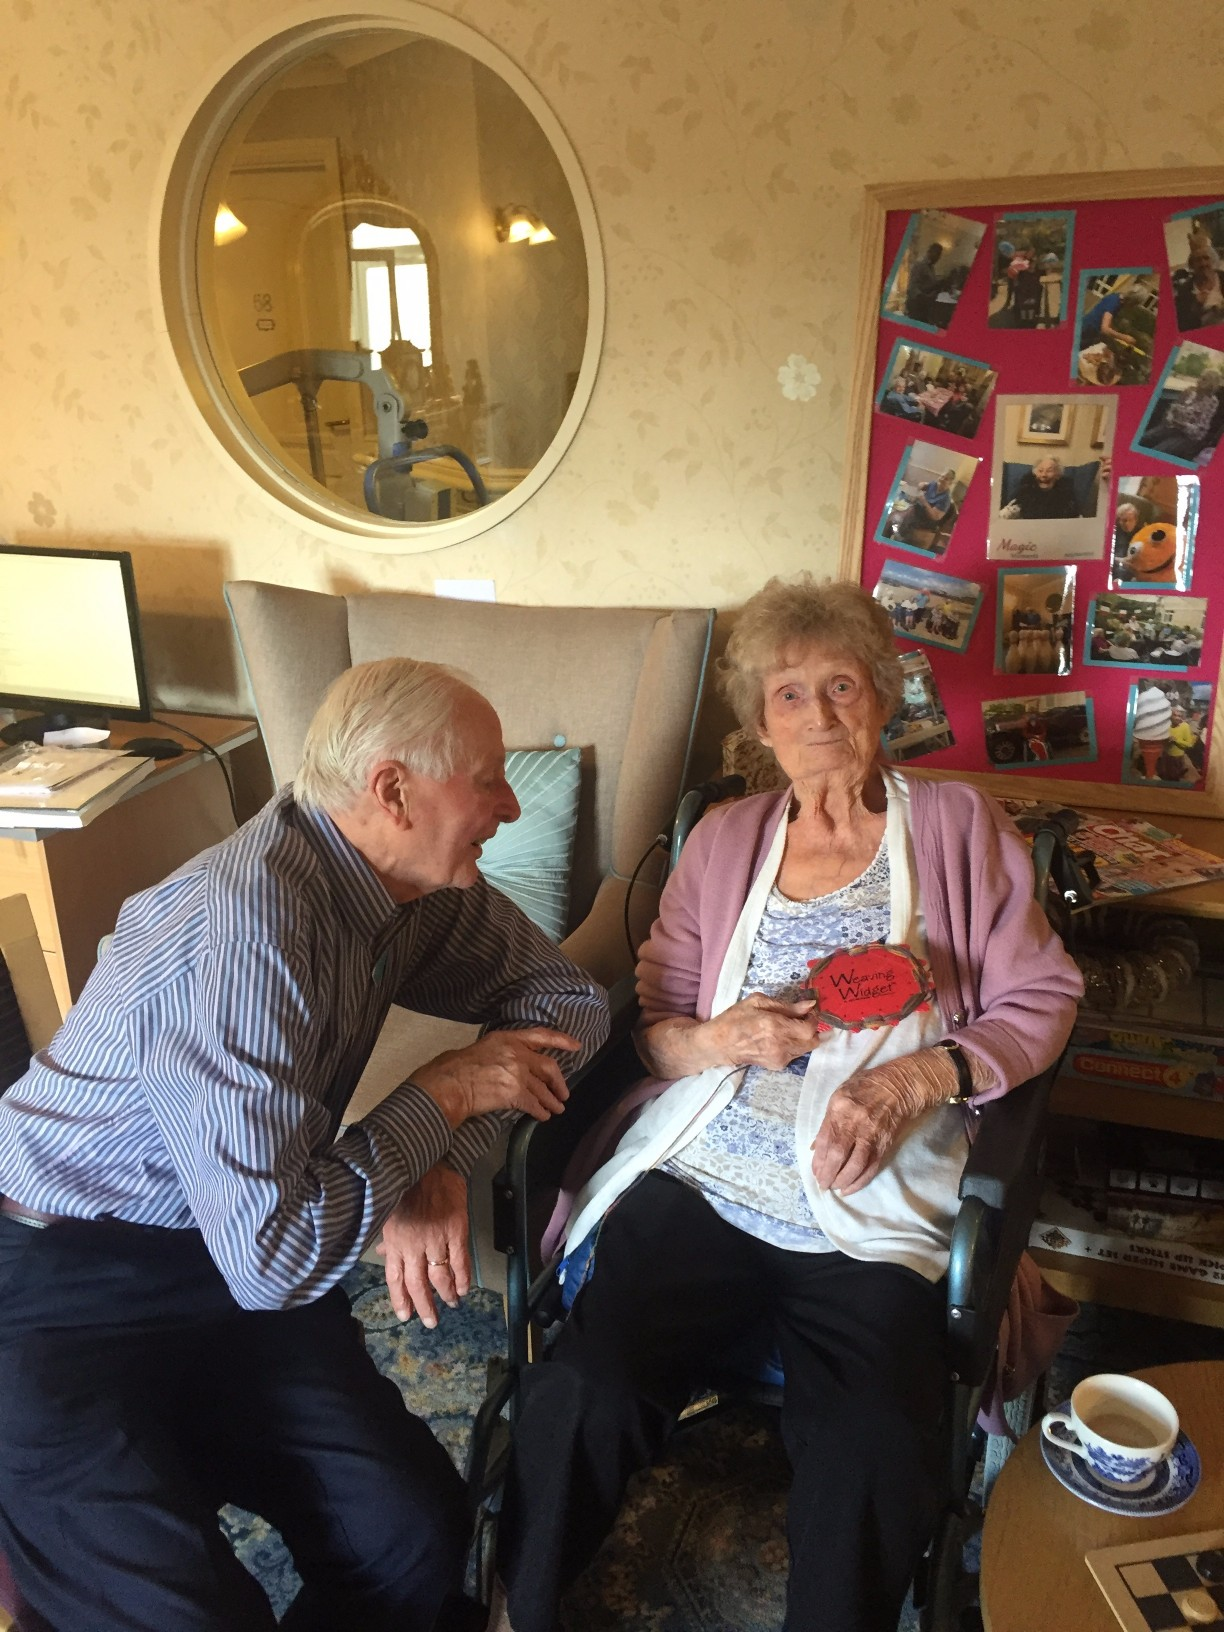 Les with resident Maureen